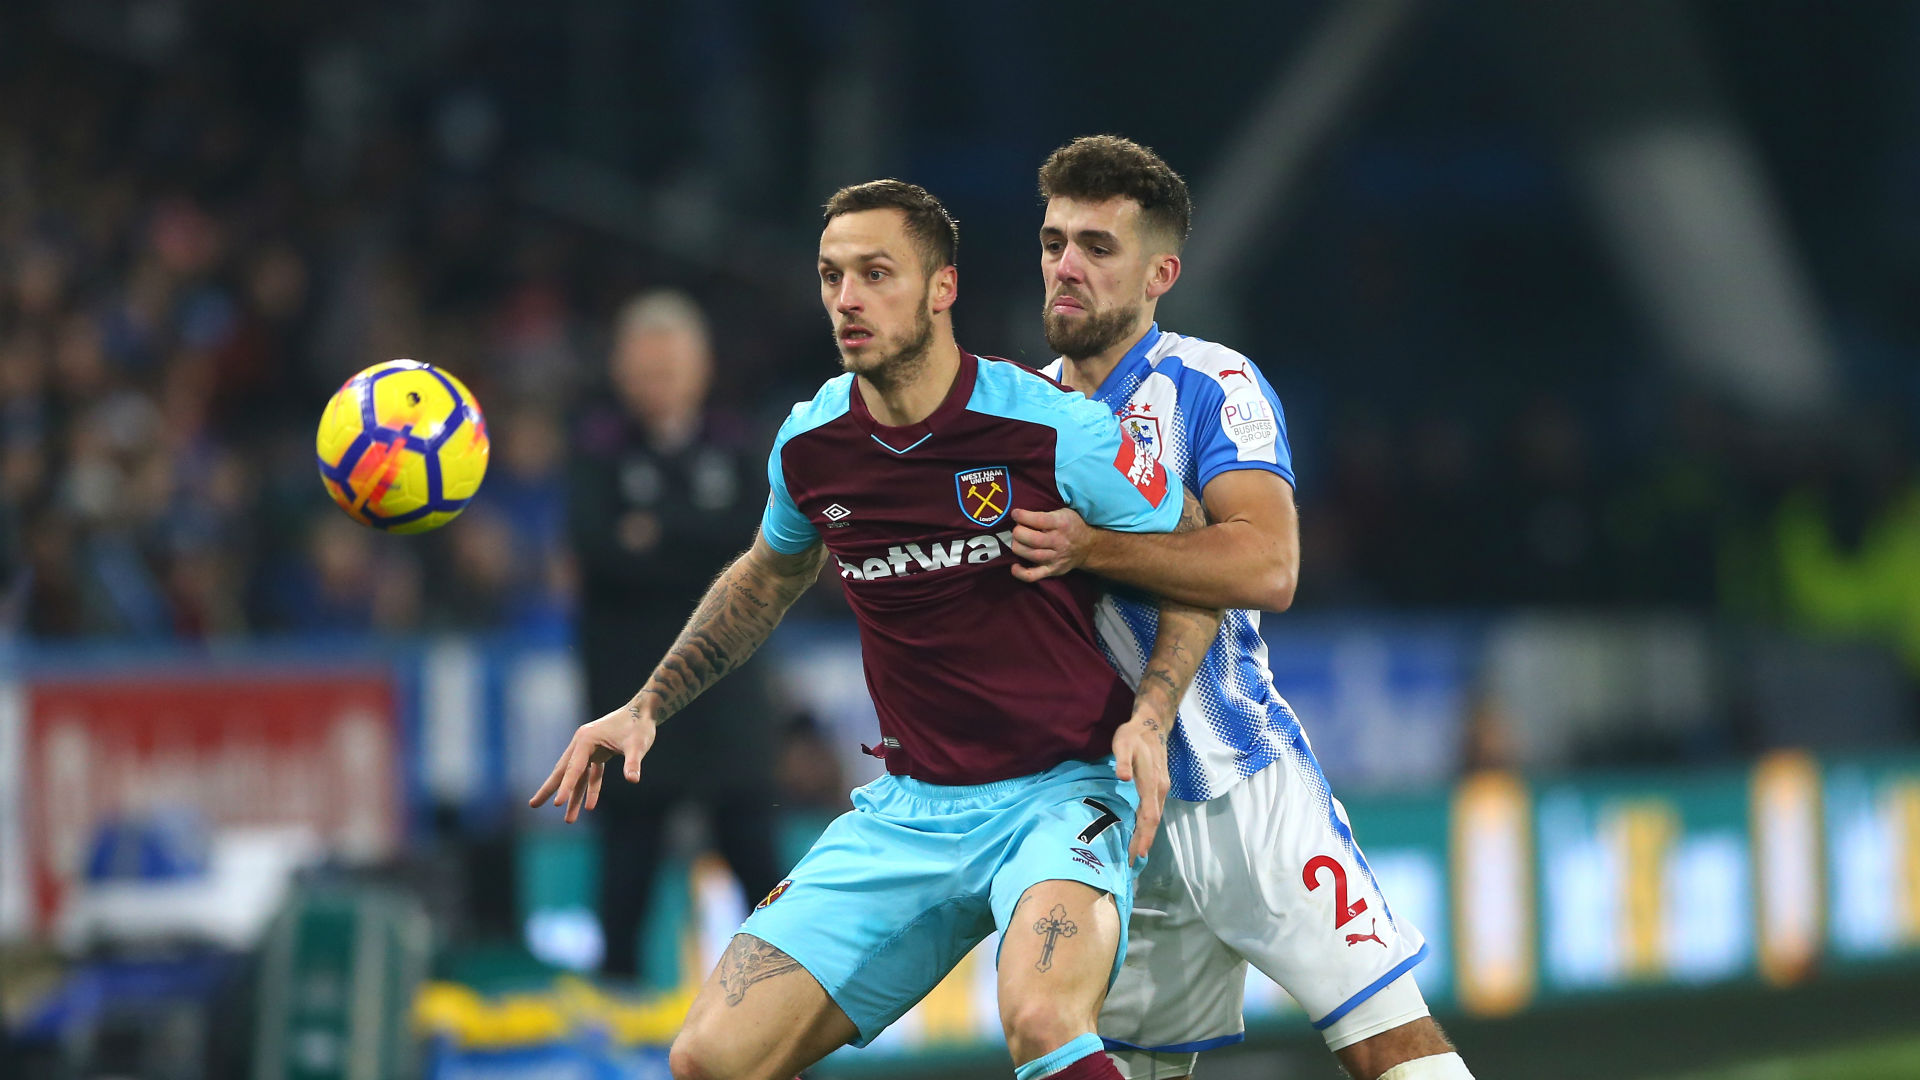 Ian Wright predicts Marko Arnautovic to score v Huddersfield